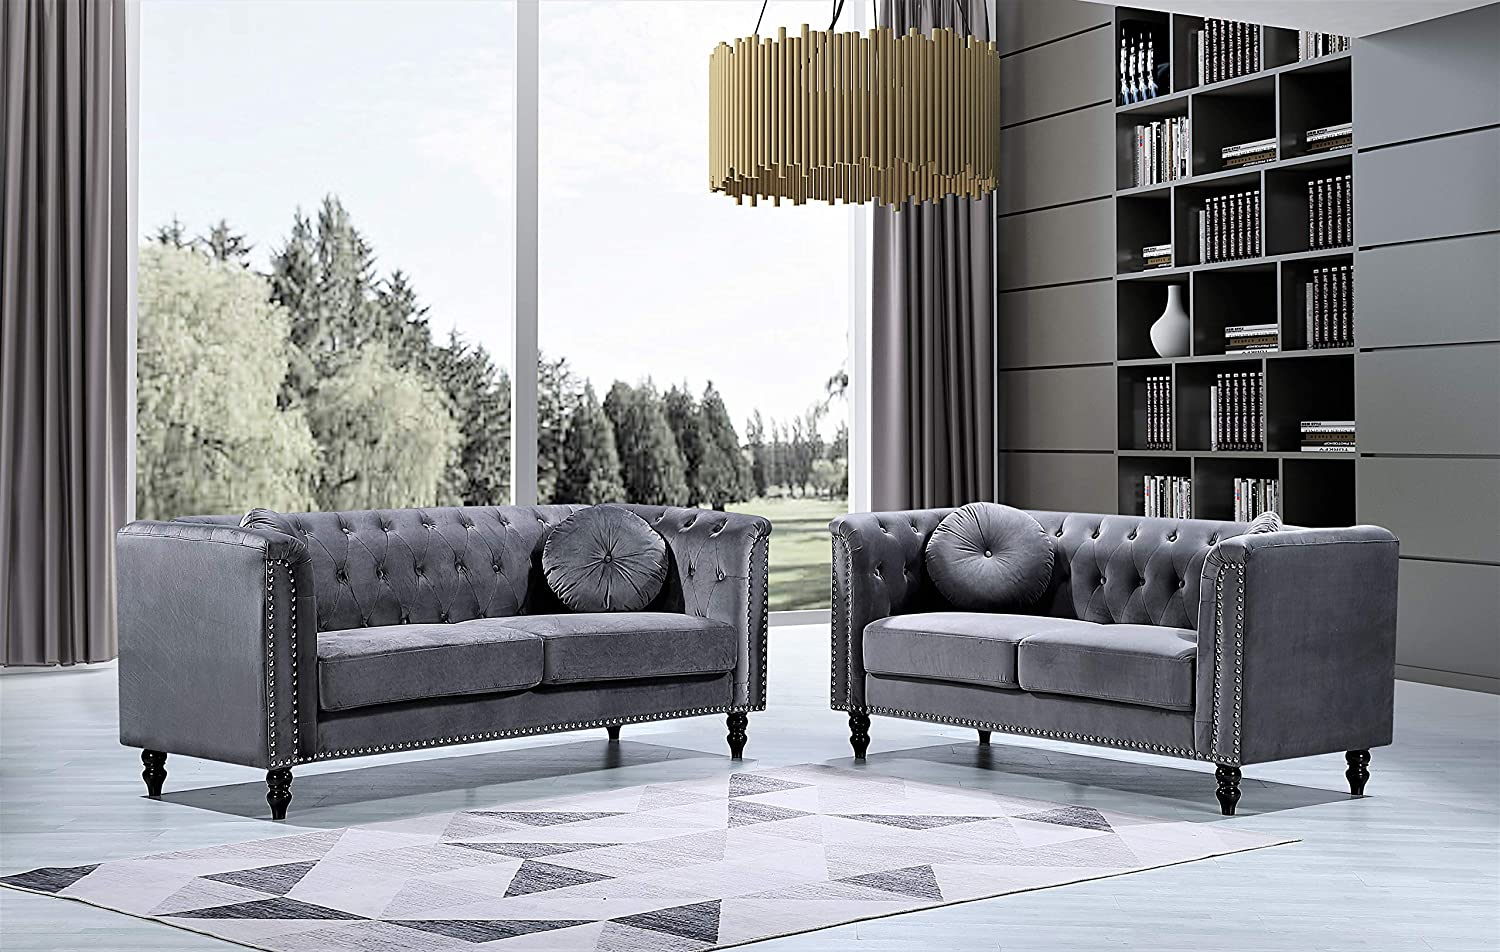 Container Furniture Direct Kittleson Mid Century Velvet Upholstered Nailhead Chesterfield Sofa Set, 2 Piece, Grey